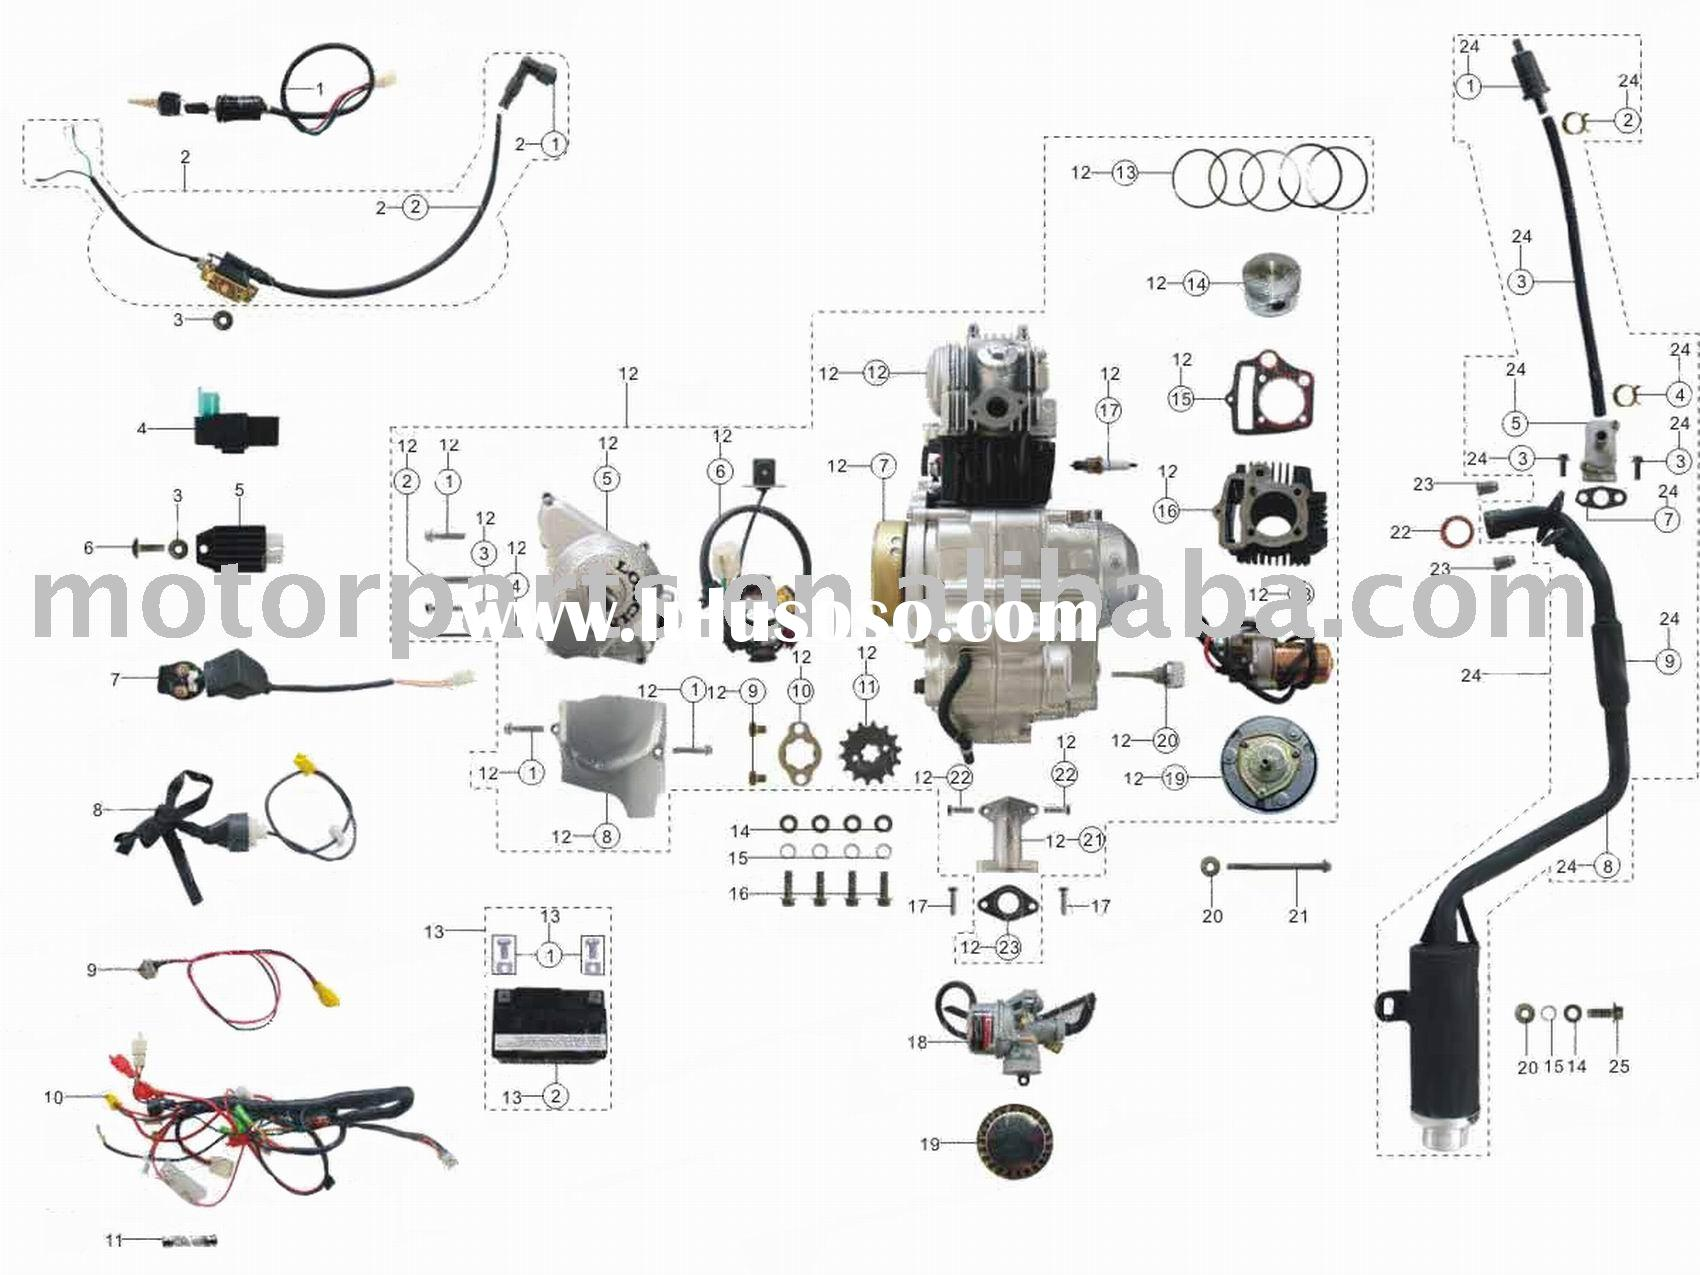 Sunl 4 Wheeler Wiring Diagram | Wiring Diagram | Article Review Baja Wiring Diagram on baja 250 parts, baja 250 honda, baja scooter repair manual, baja 250 transmission diagram, baja 250 engine, baja 50 atv parts diagram, baja heat mini bike manual, baja 250 flywheel, baja doodle bug manual,